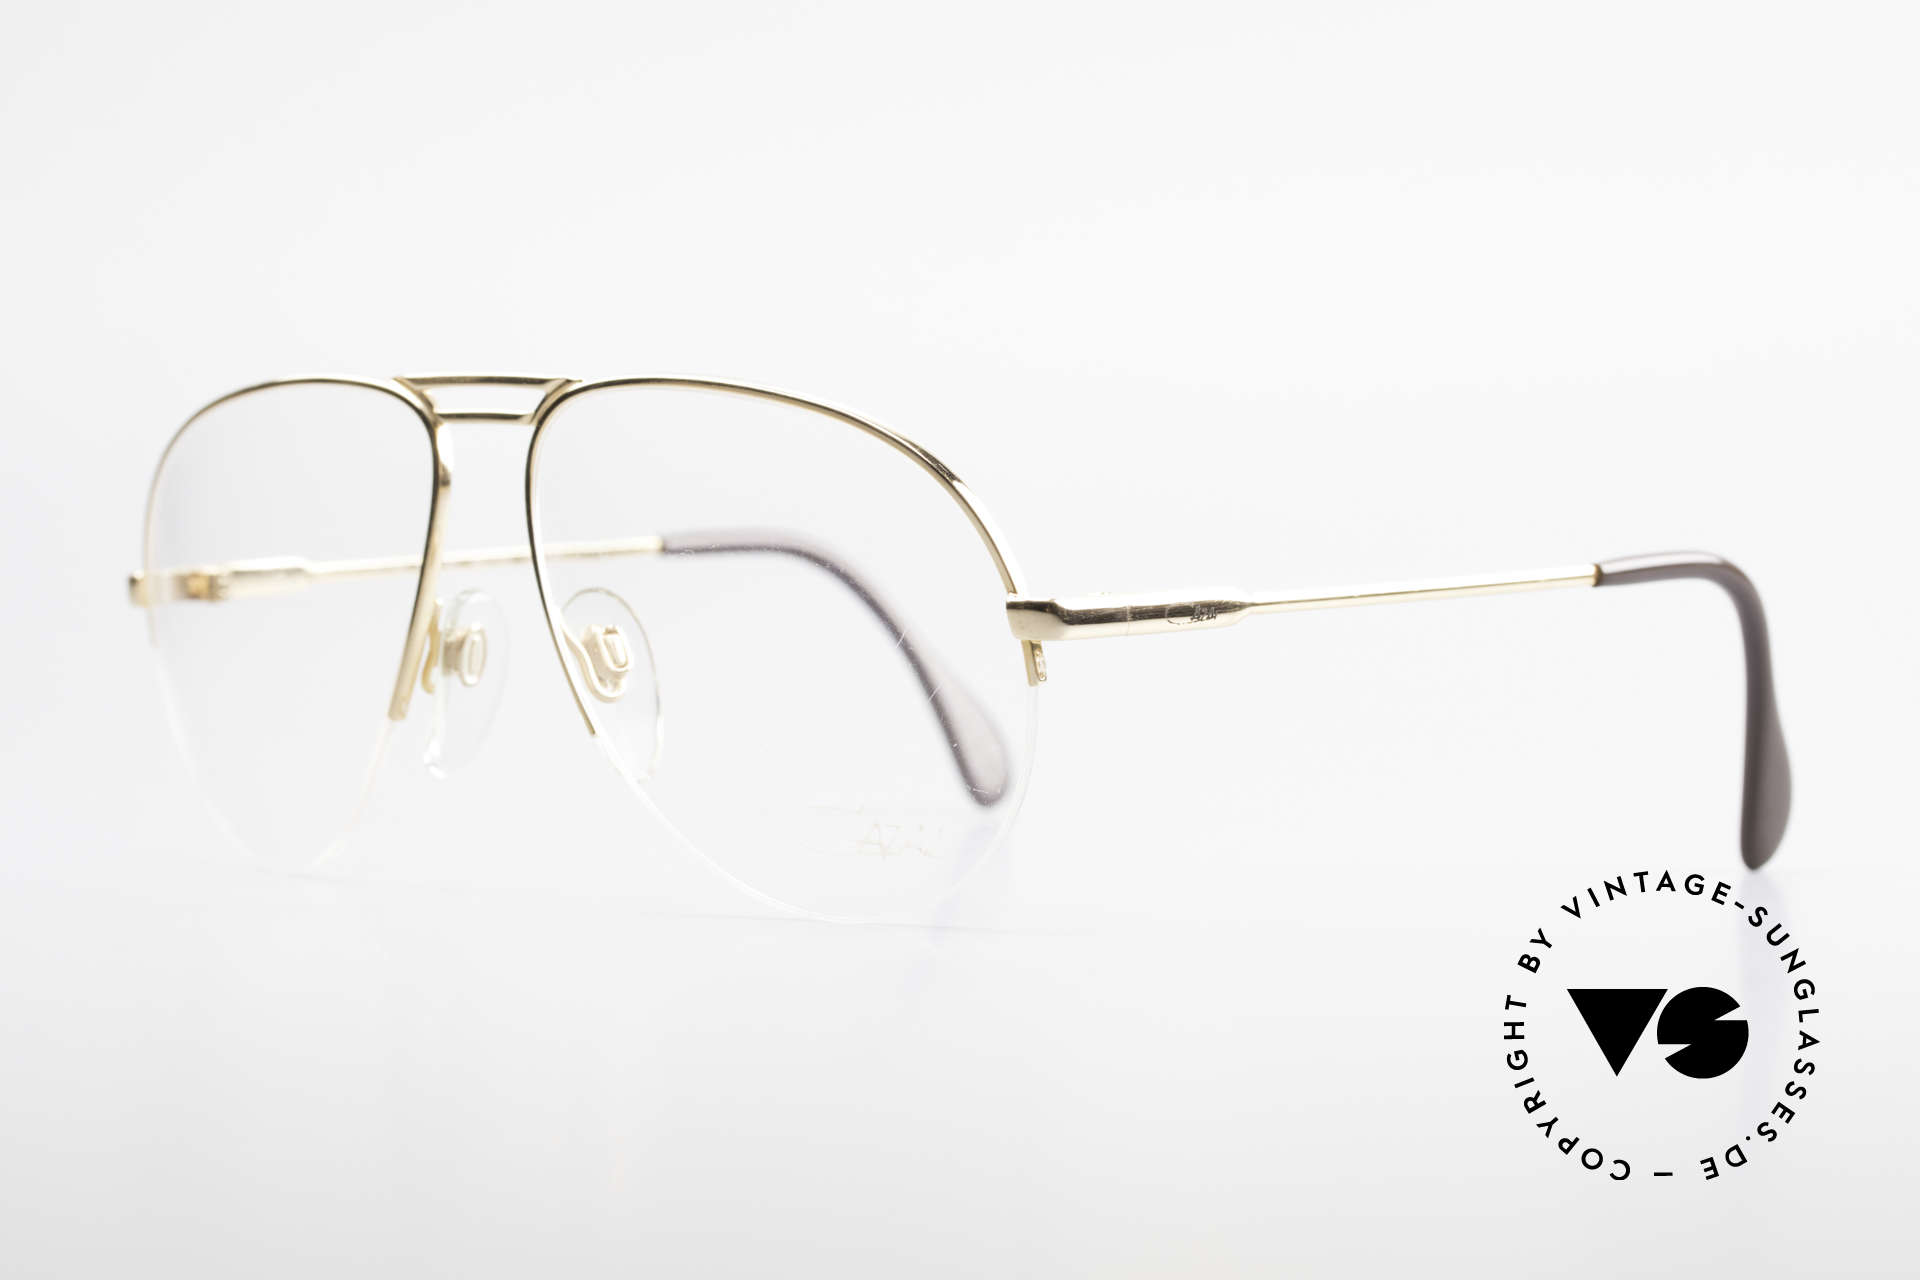 Cazal 726 West Germany Aviator Glasses, half rimless frame (1. class wearing comfort), Made for Men